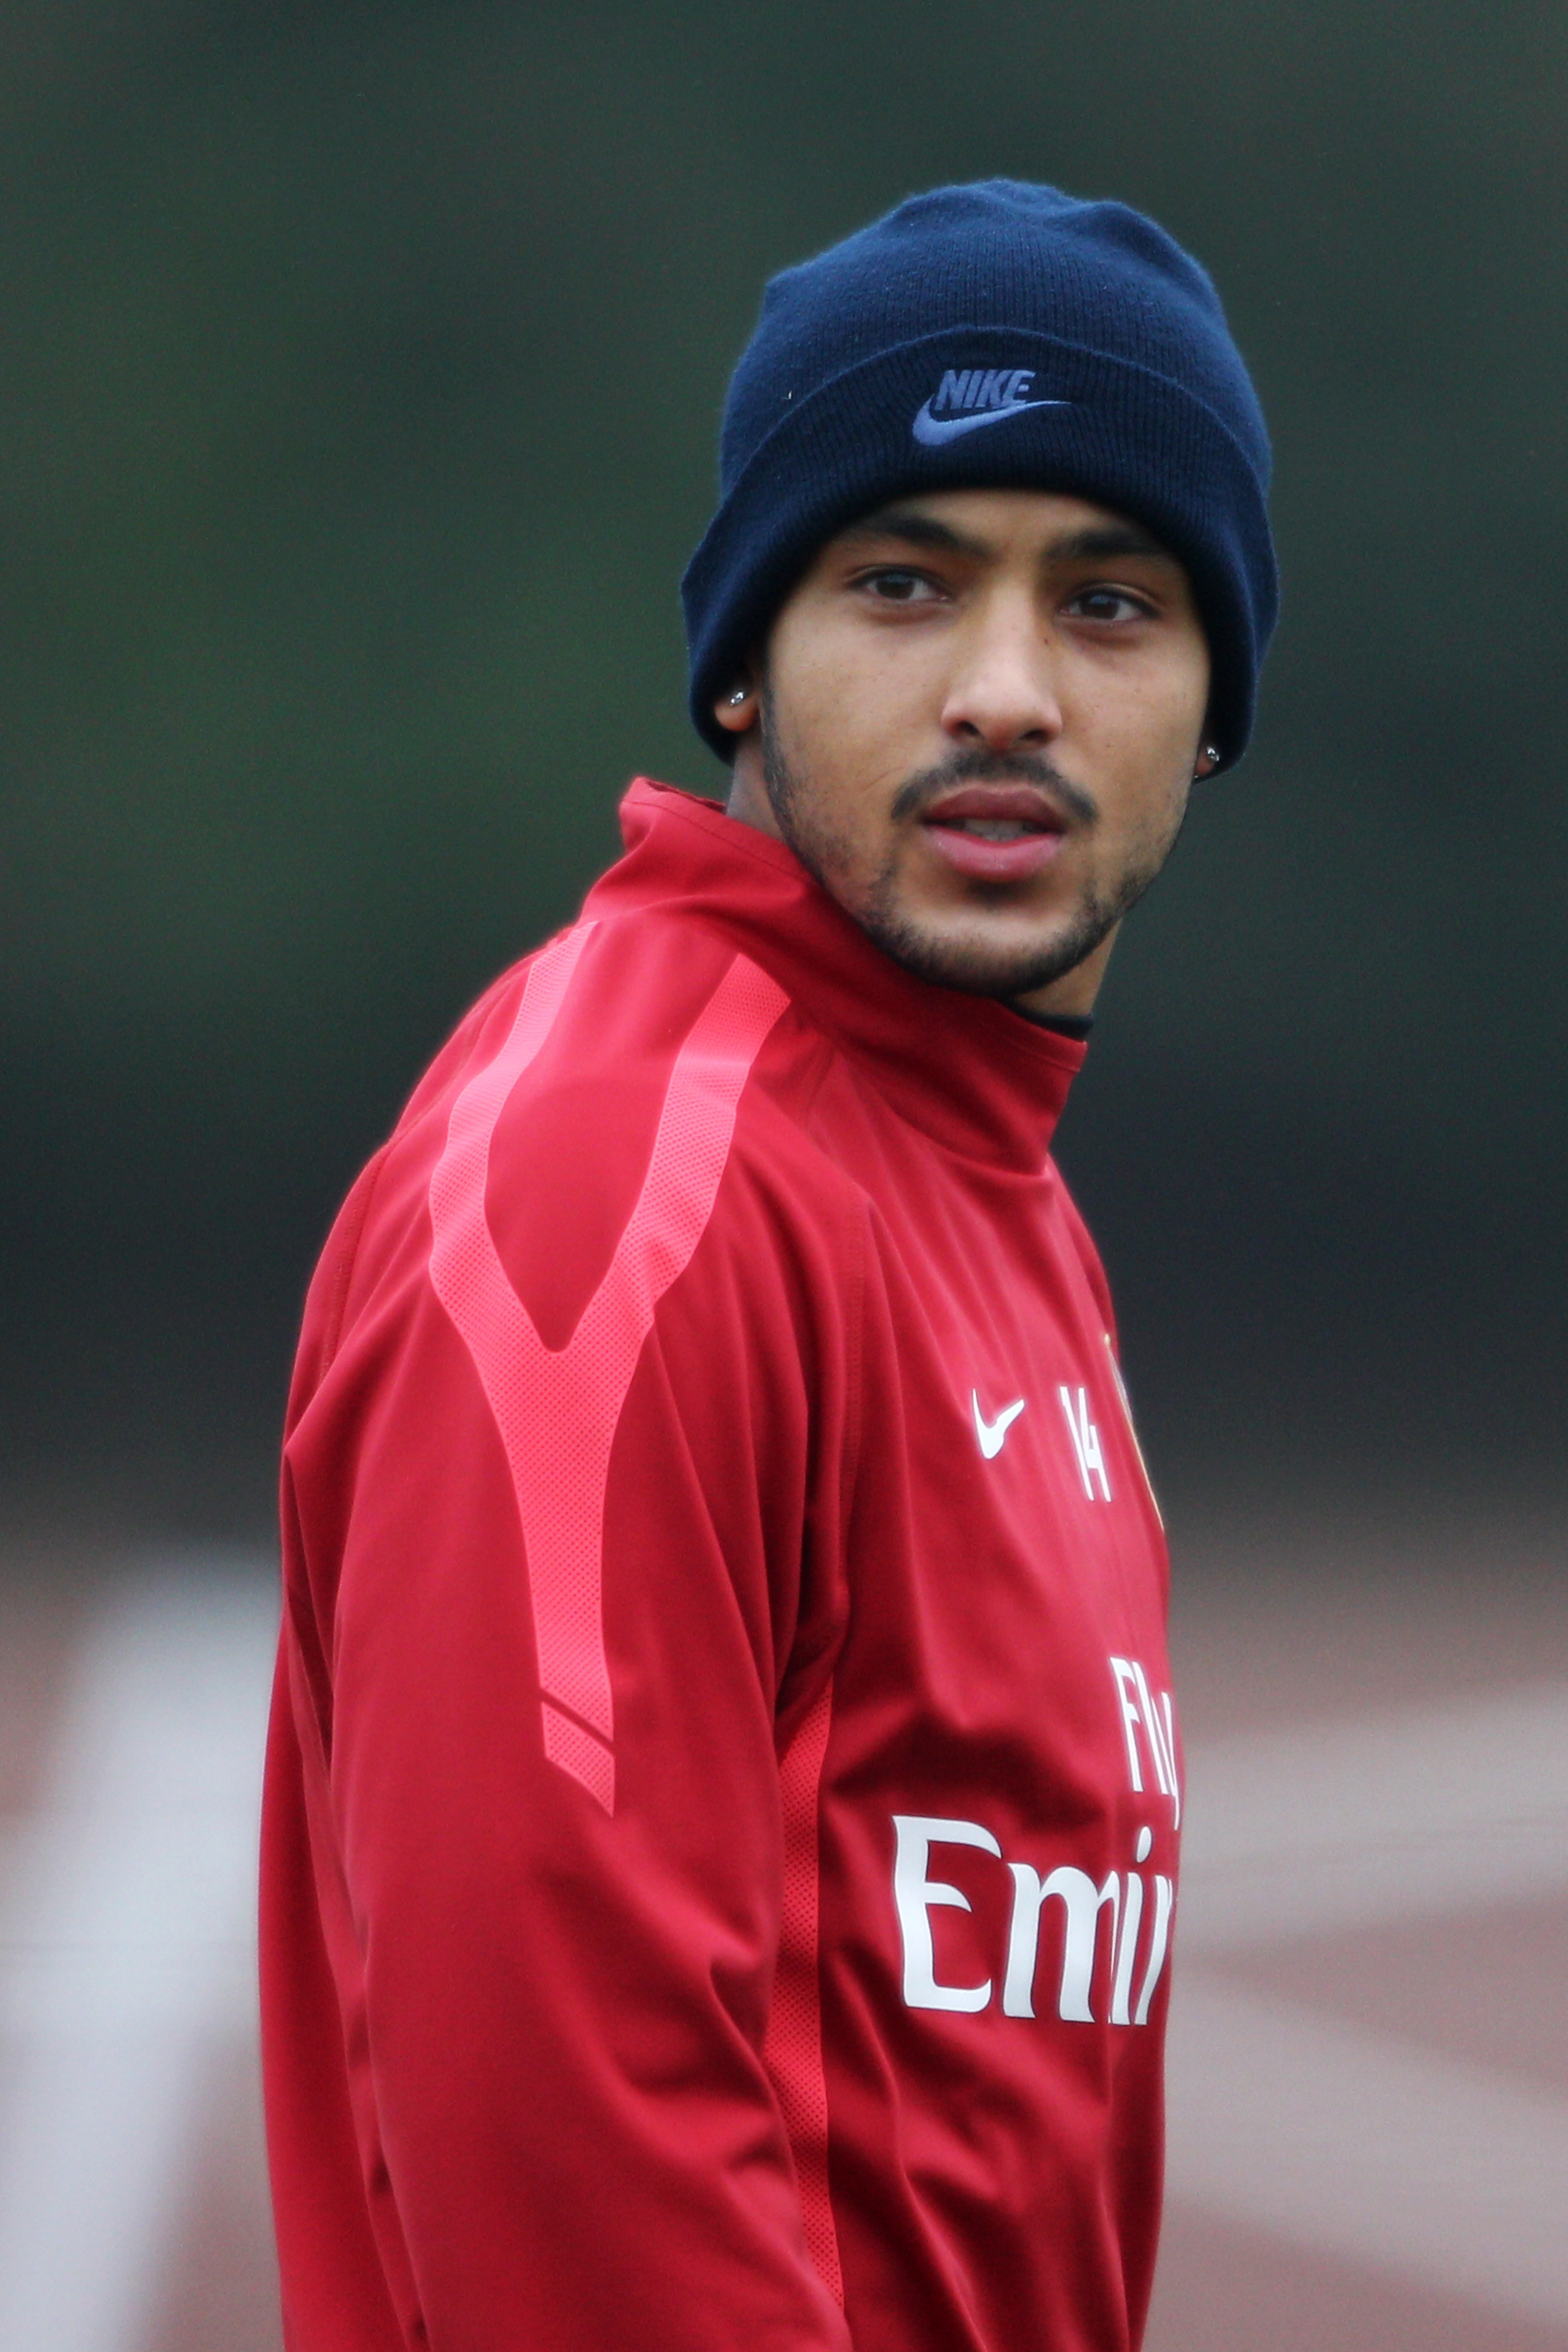 ST ALBANS, ENGLAND - DECEMBER Theo Walcott in action during the Arsenal Training Session at London Colney on December 15, 2010 in St Albans, England.  (Photo by Dean Mouhtaropoulos/Getty Images)